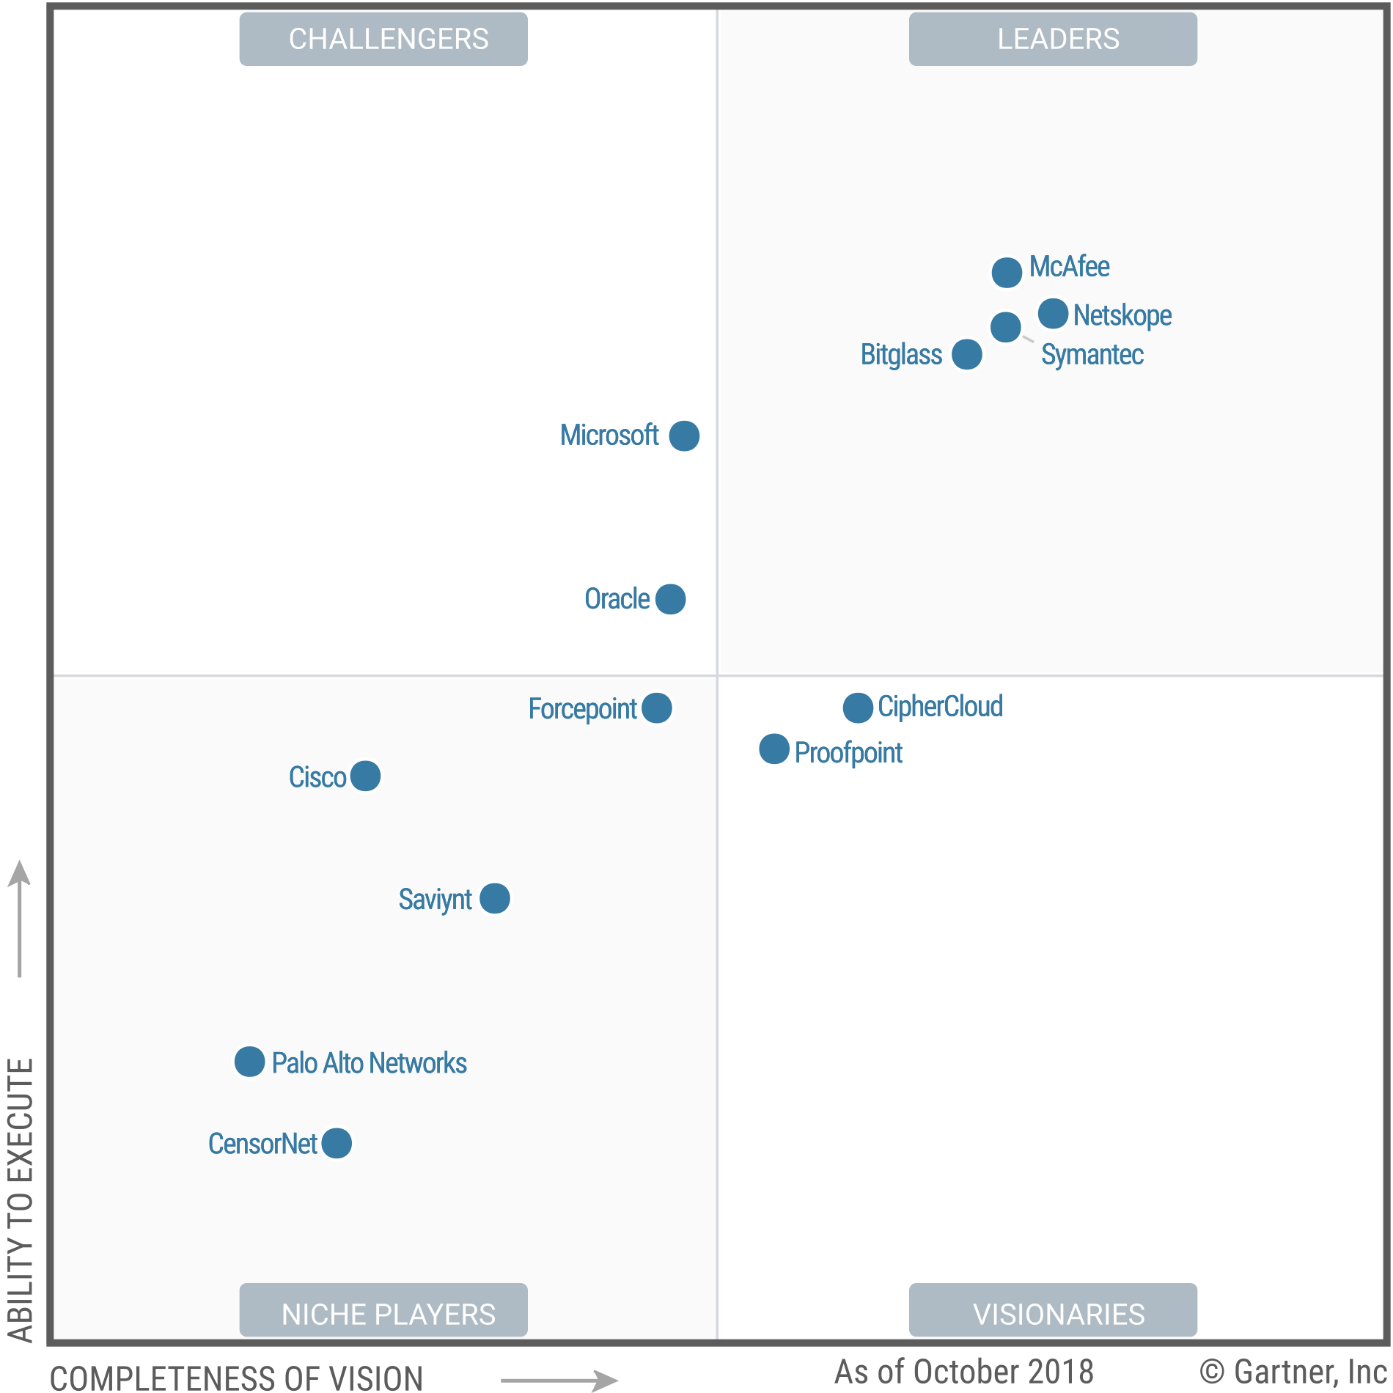 Magic Quadrant for Cloud Access Security Brokers 2018 (G00348564)